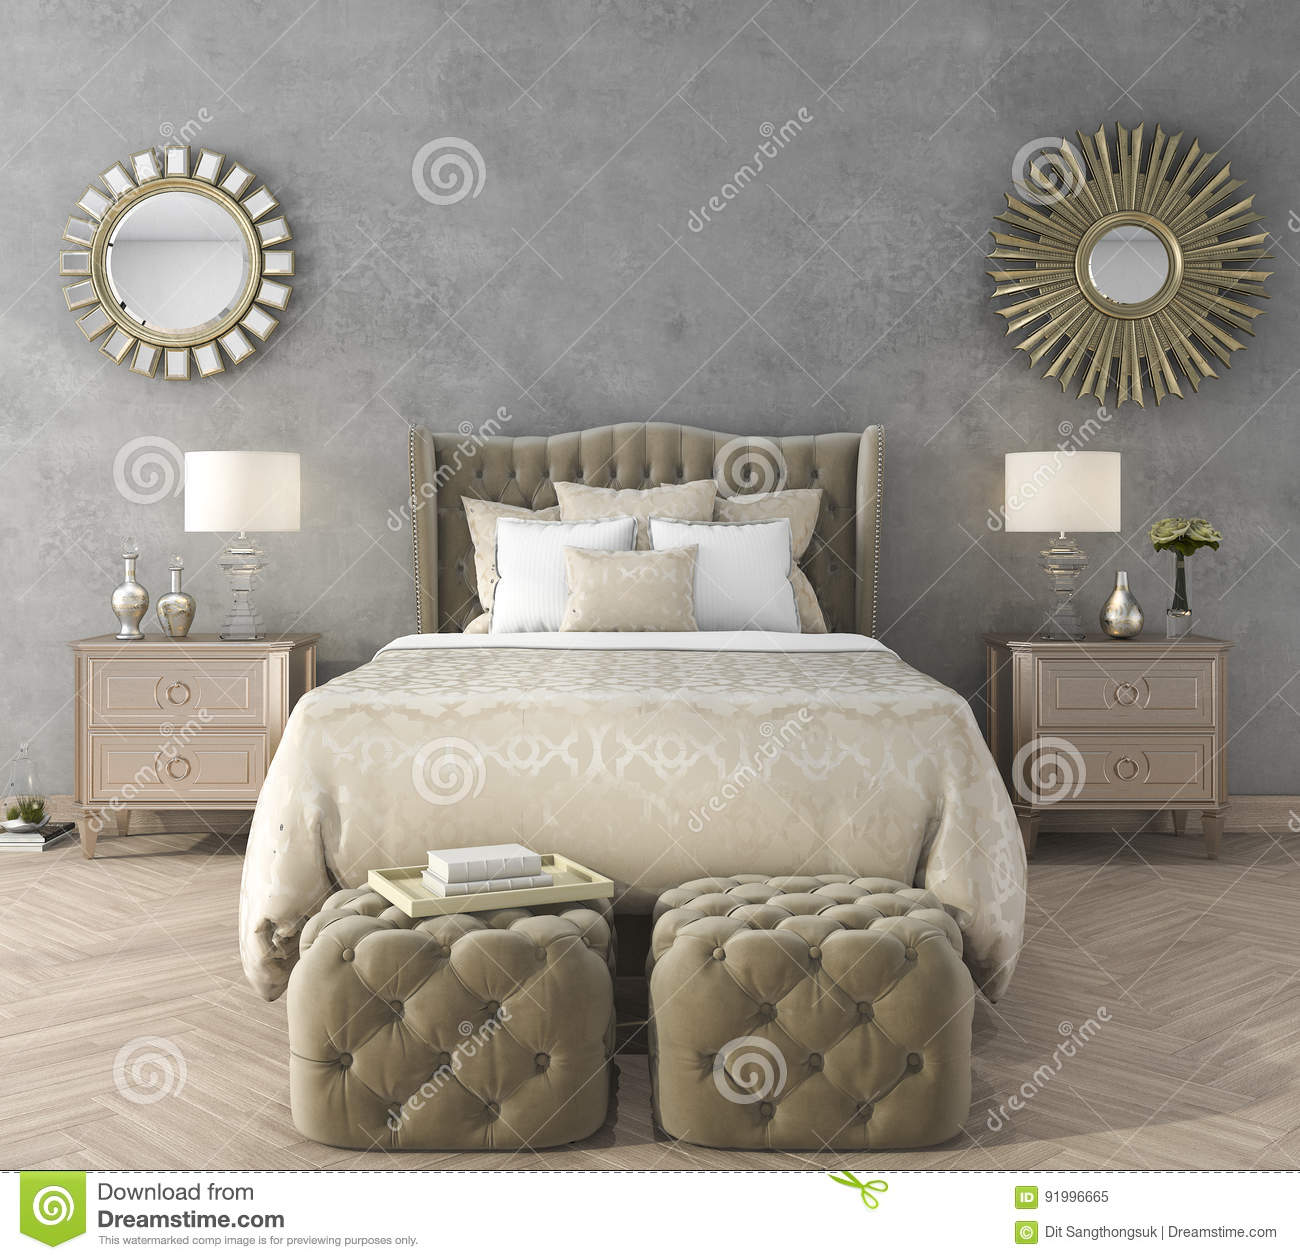 https://thumbs.dreamstime.com/z/d-rendering-classic-luxury-bedroom-pouf-mirror-concrete-wall-interior-exterior-design-91996665.jpg